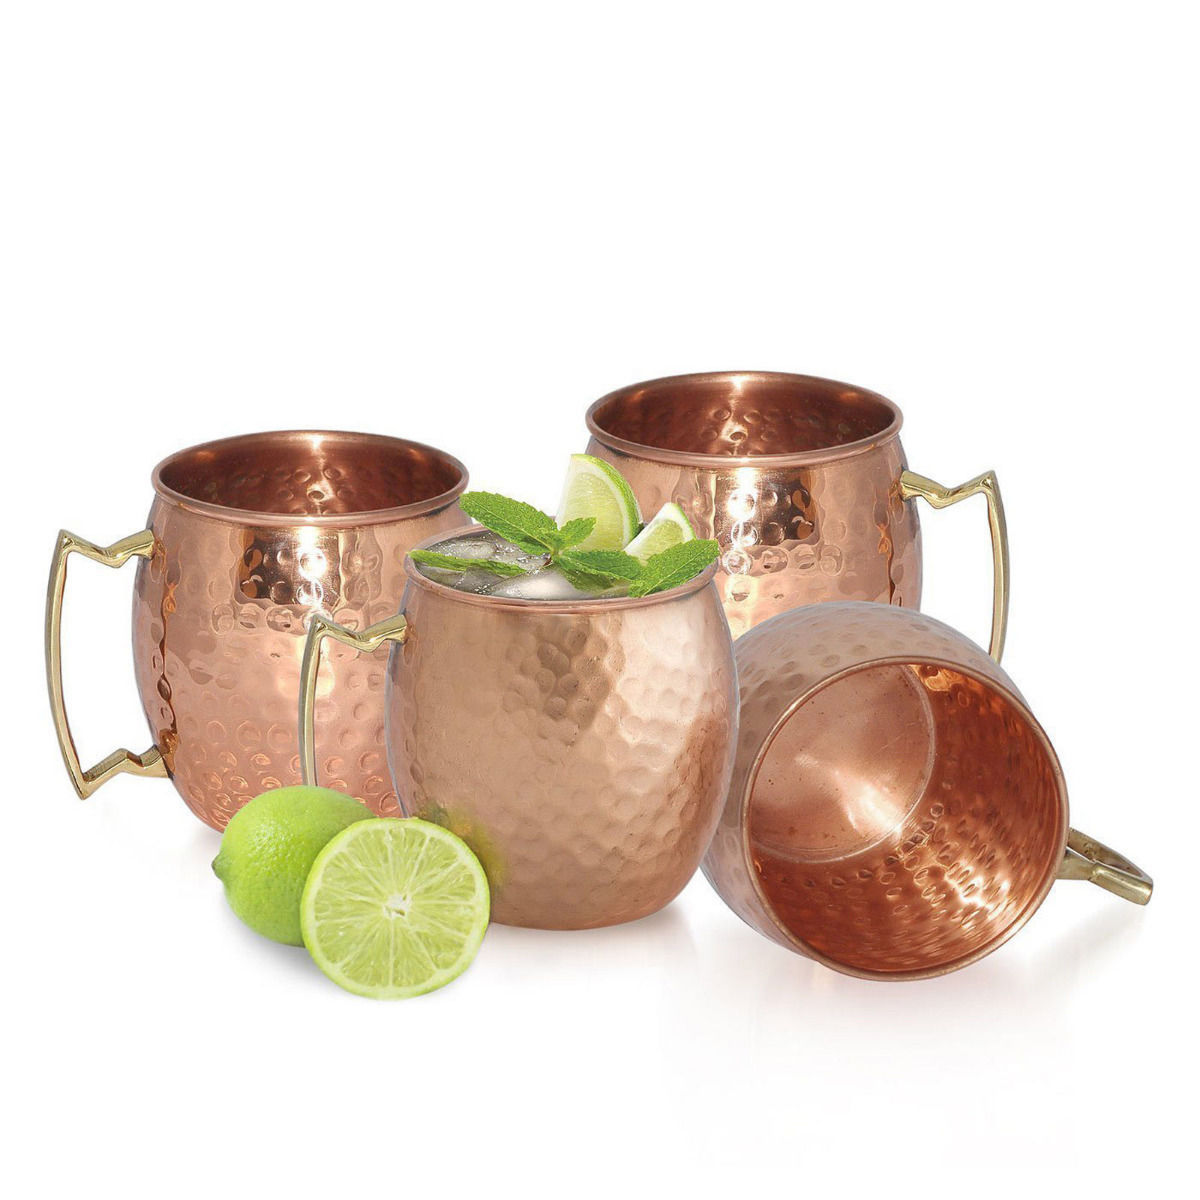 4 moscow mule mug cup drinking hammered copper brass steel gift set 16oznew - Moscow Mule Copper Mug